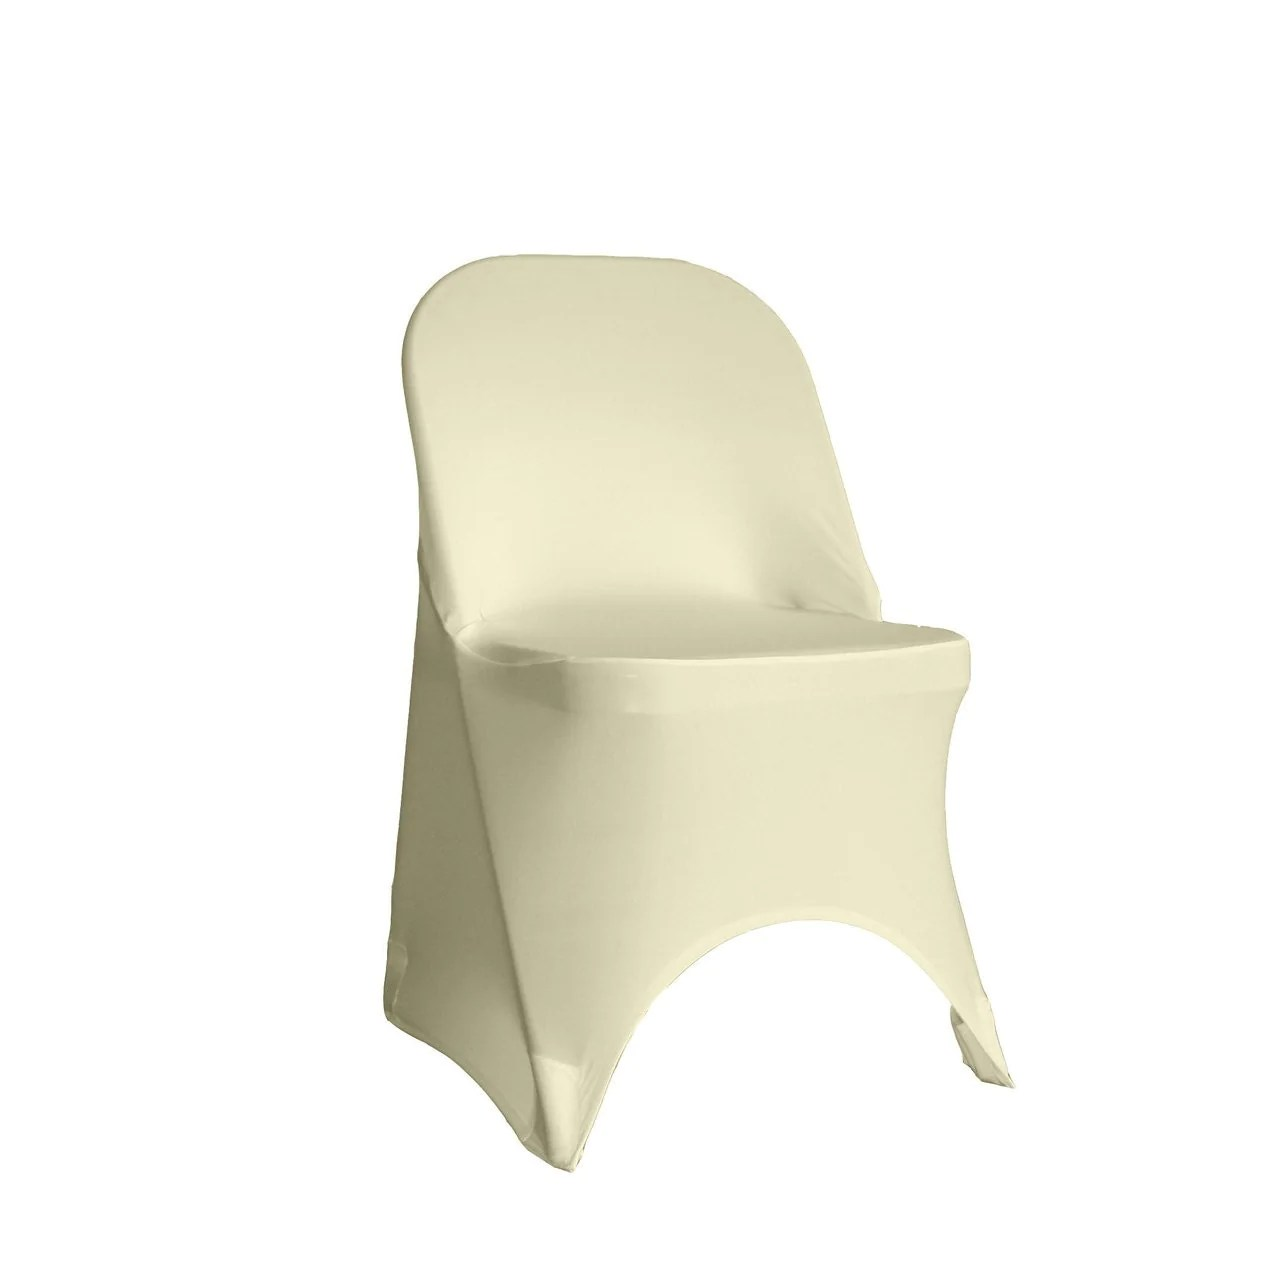 stretch chair covers kendrick sleeper and a half spandex folding cover ivory